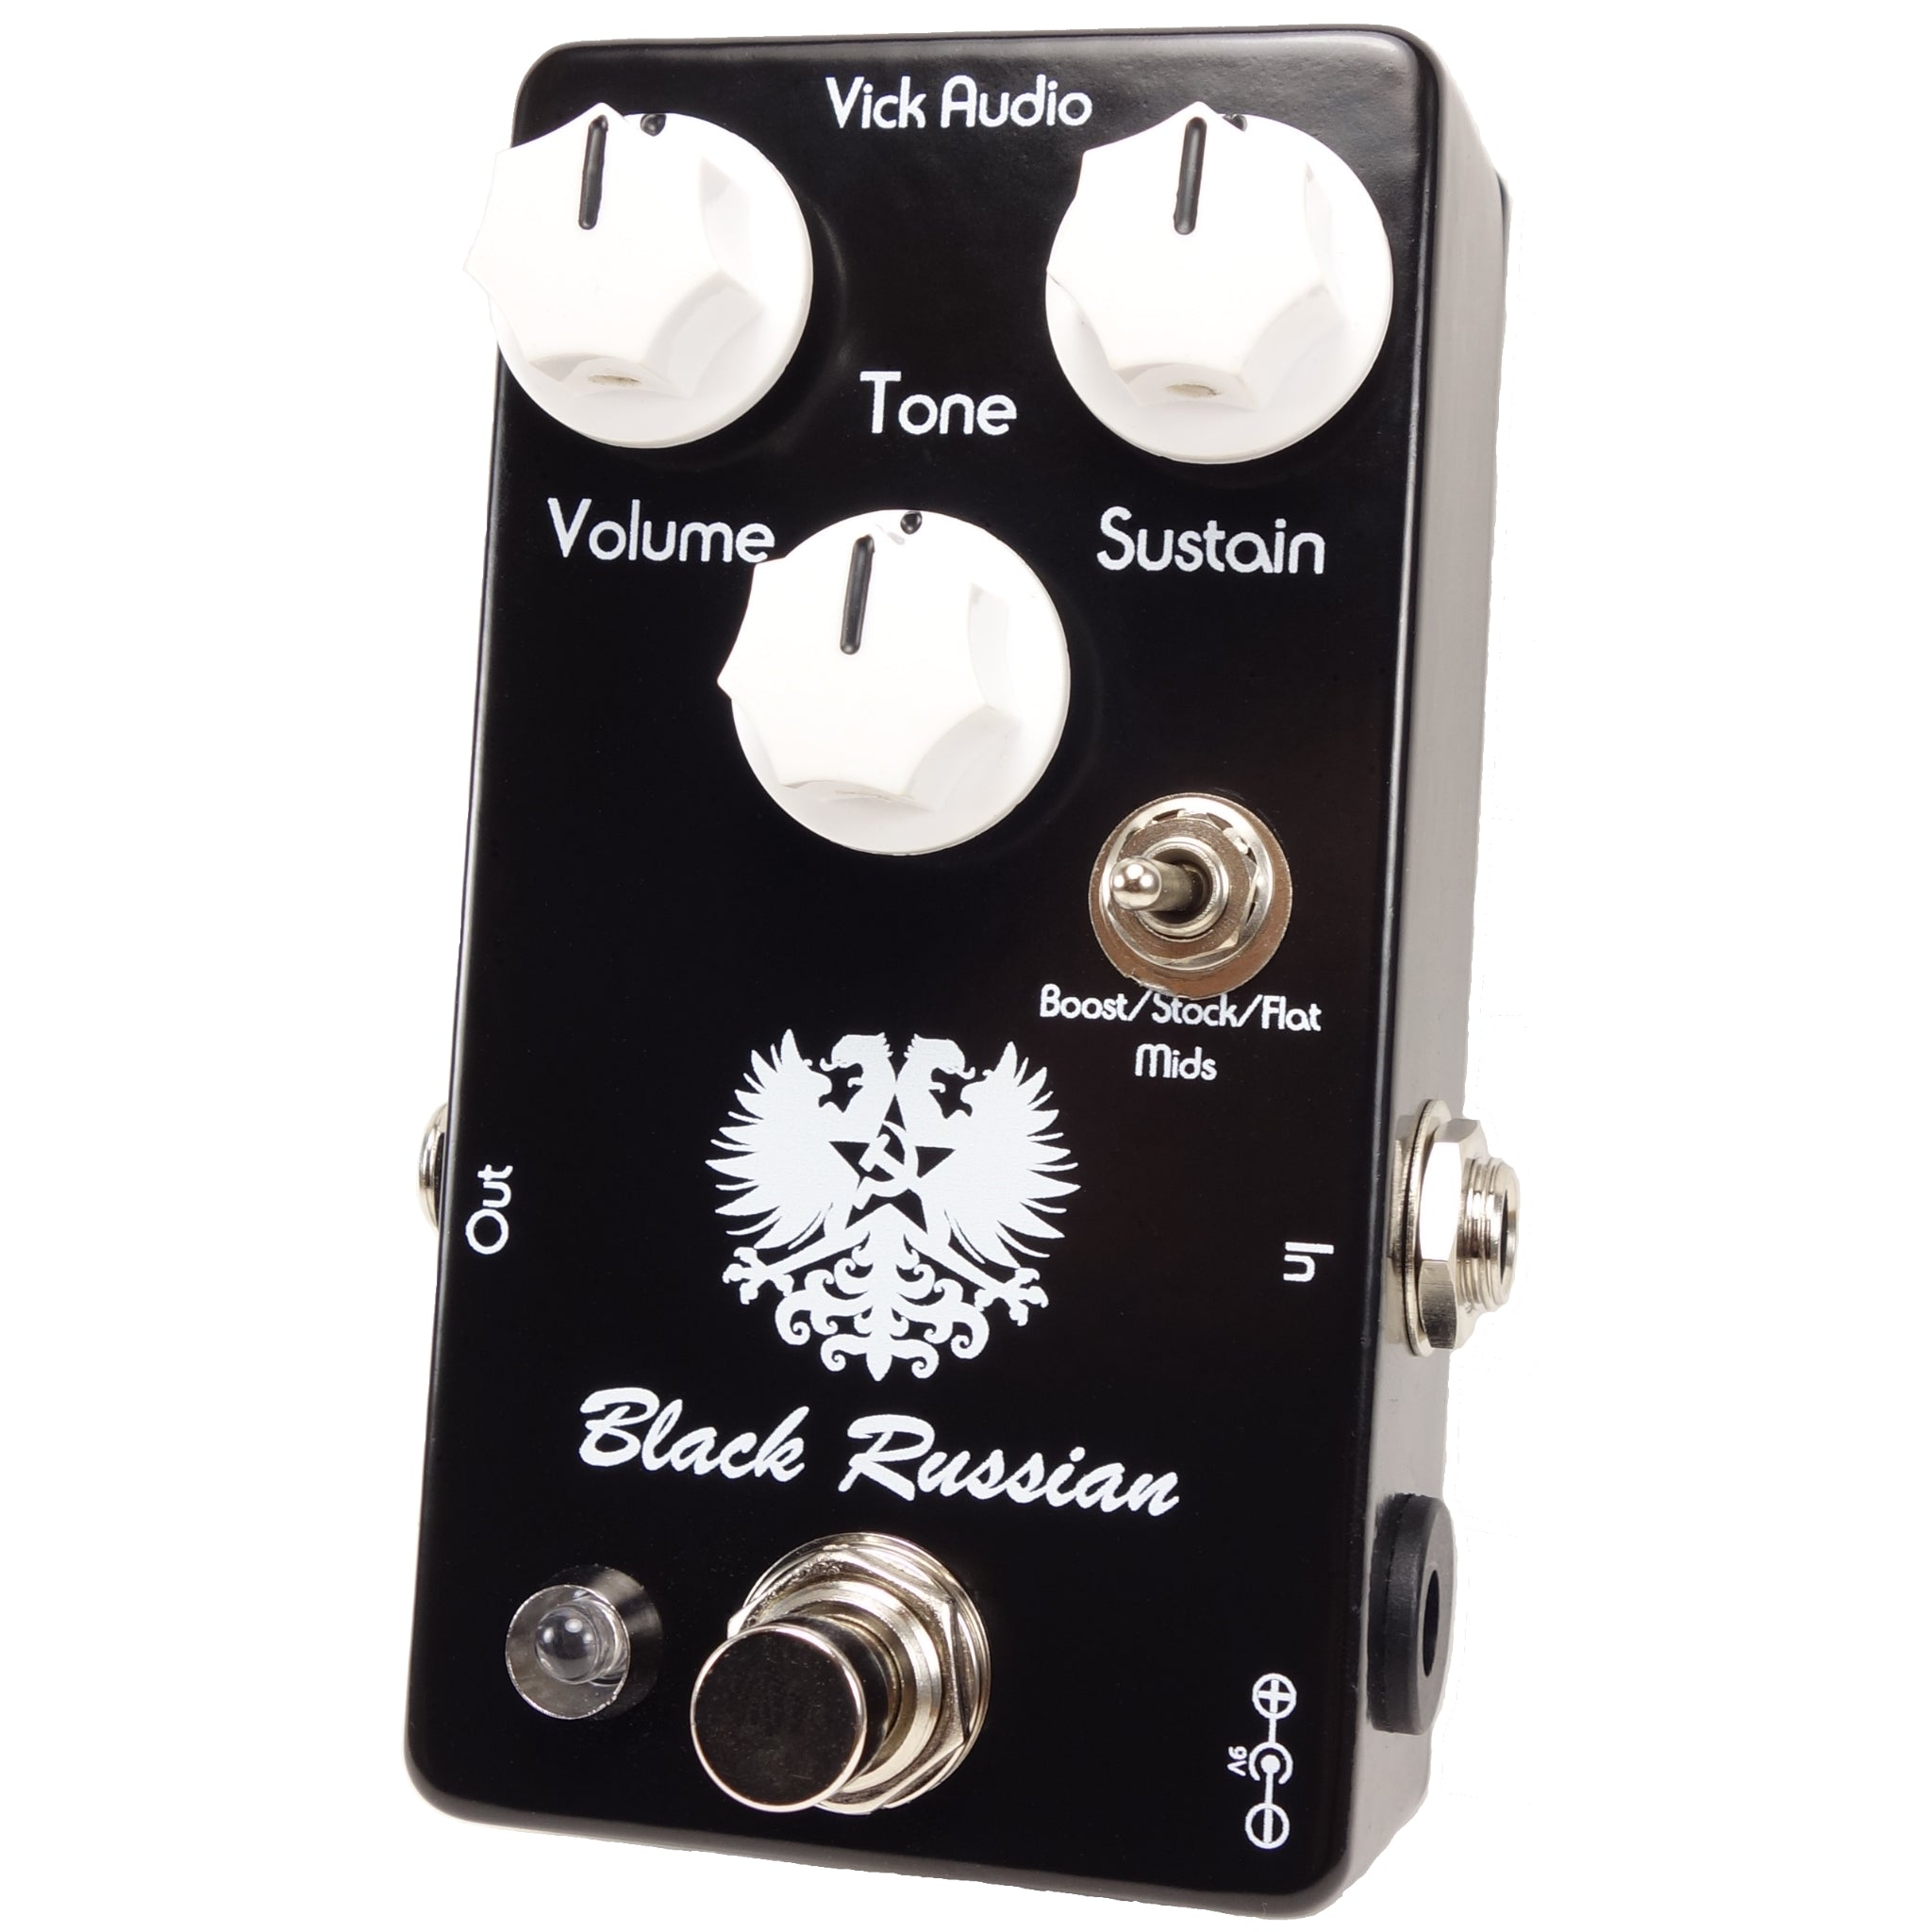 Vick Audio Black Russian Fuzz